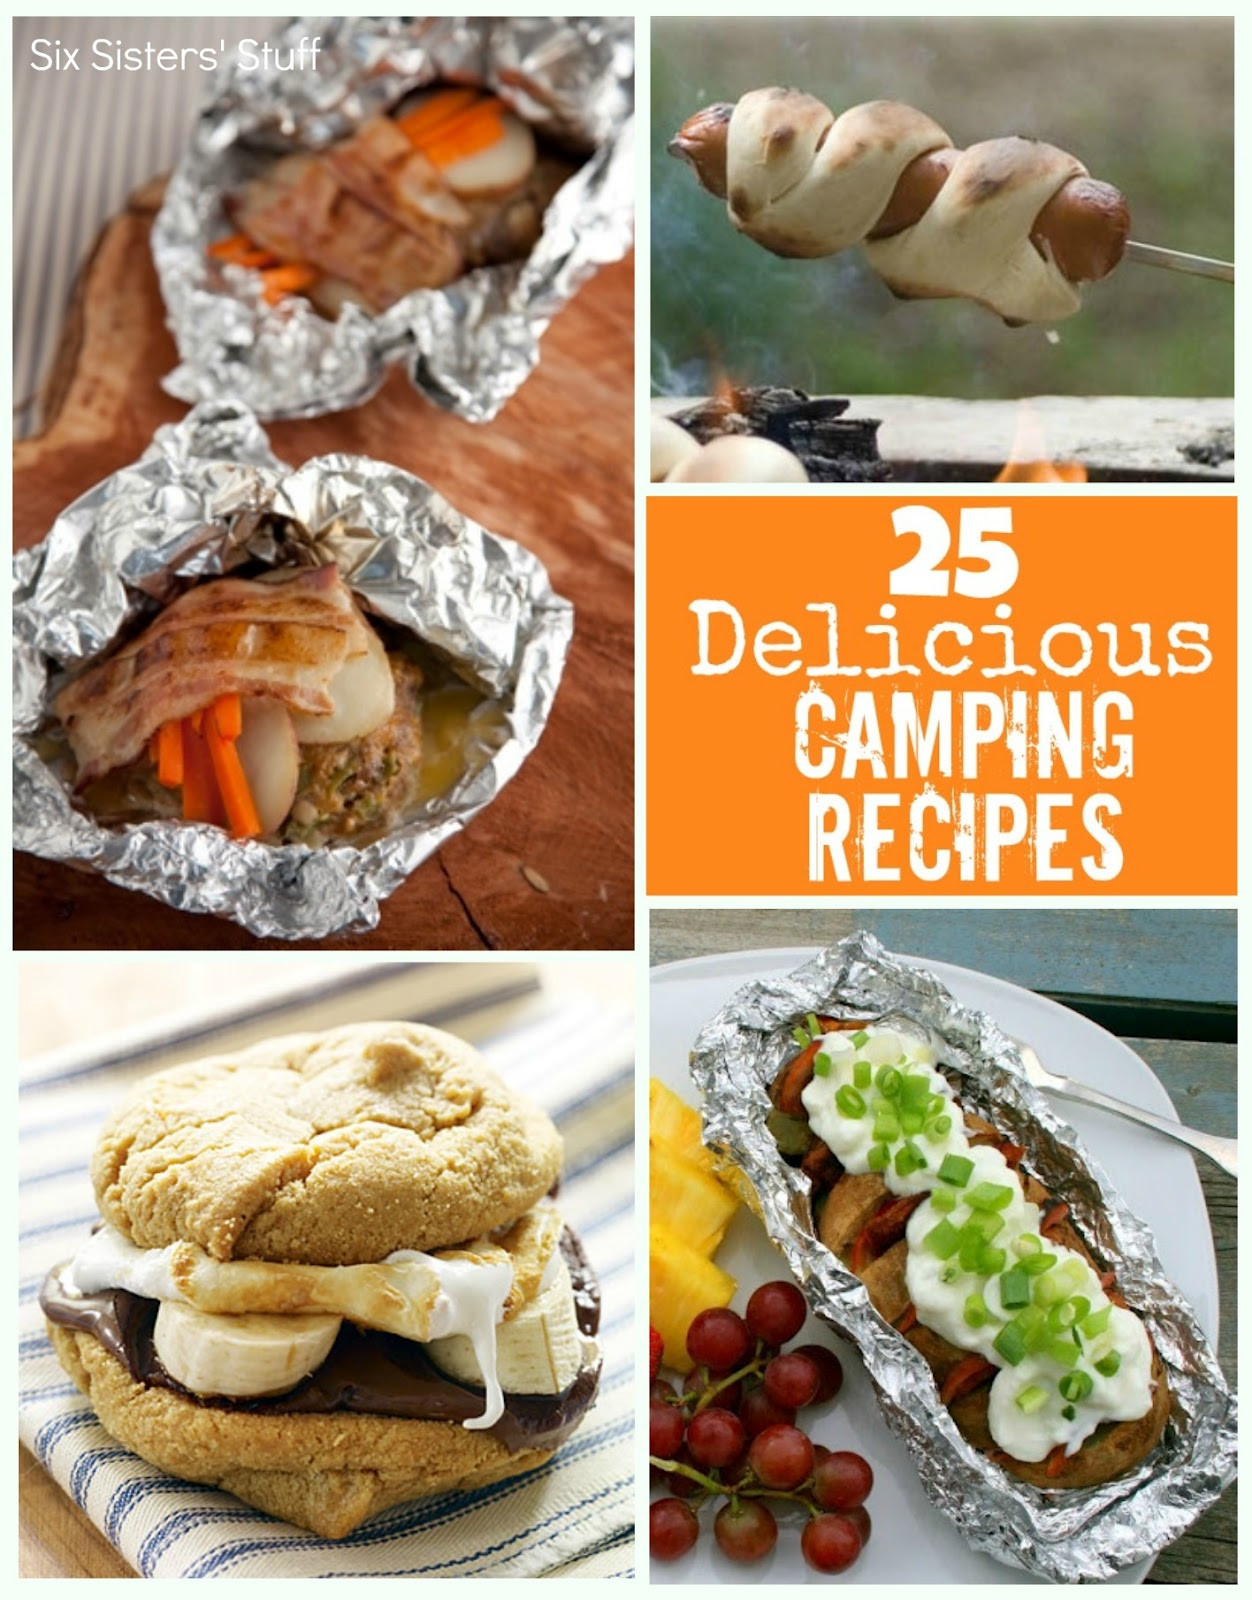 Camping Dinner Ideas  25 Delicious Camping Recipes Six Sisters Stuff